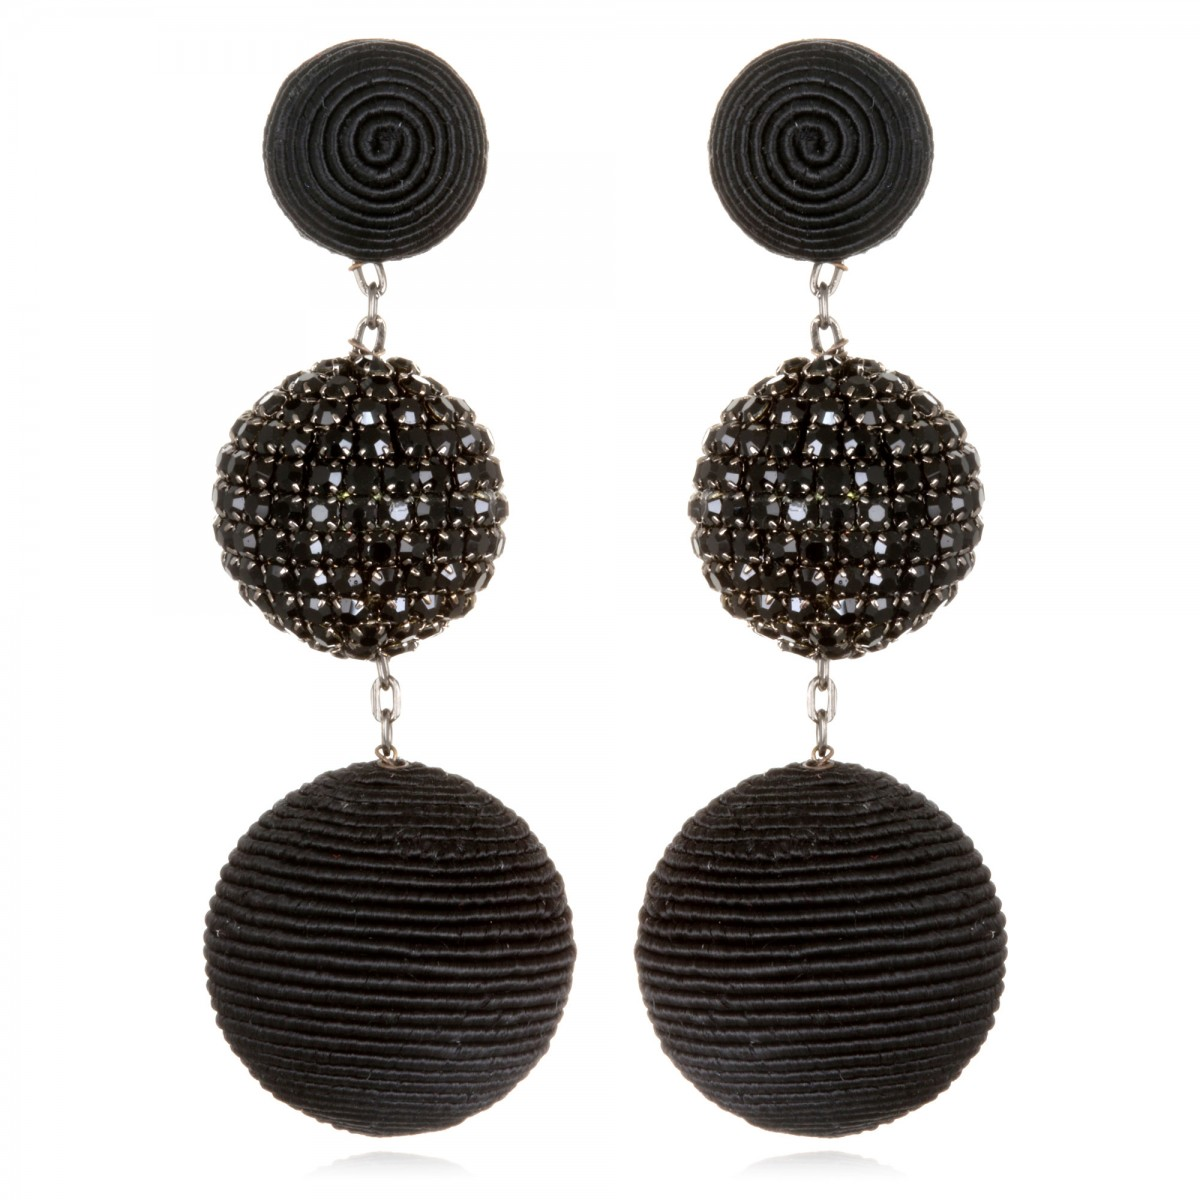 Black Beaded BonBon Earrings by SUZANNA DAI